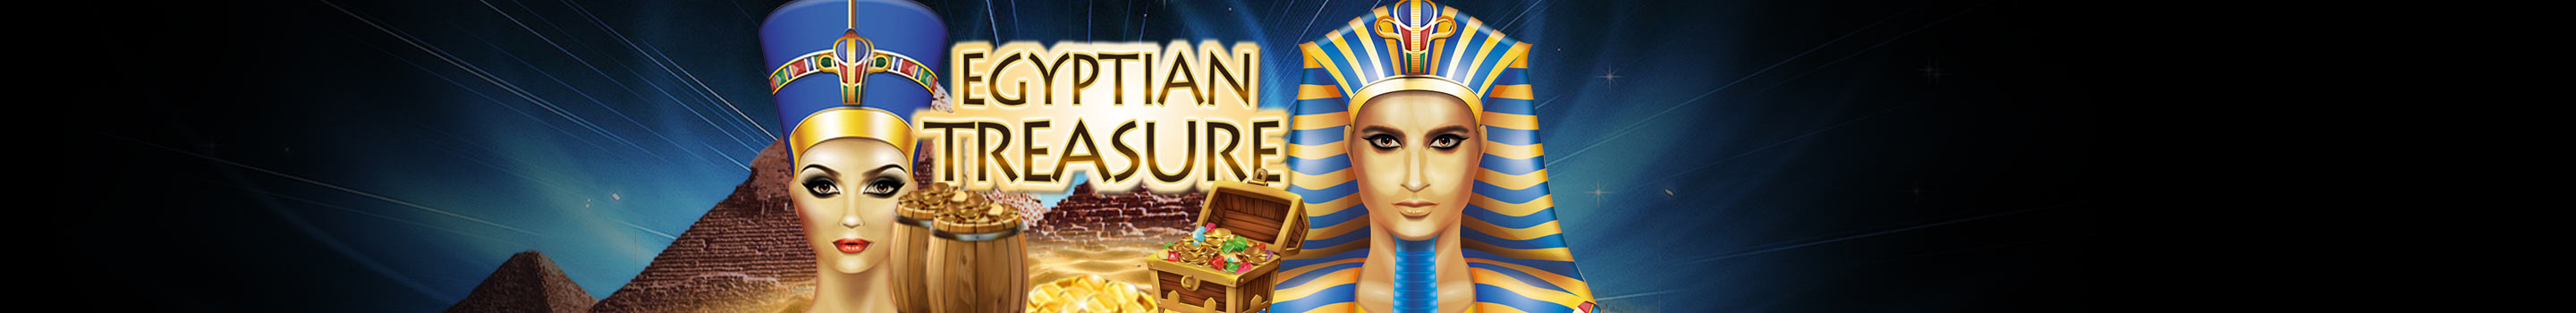 Egyptian Treasure